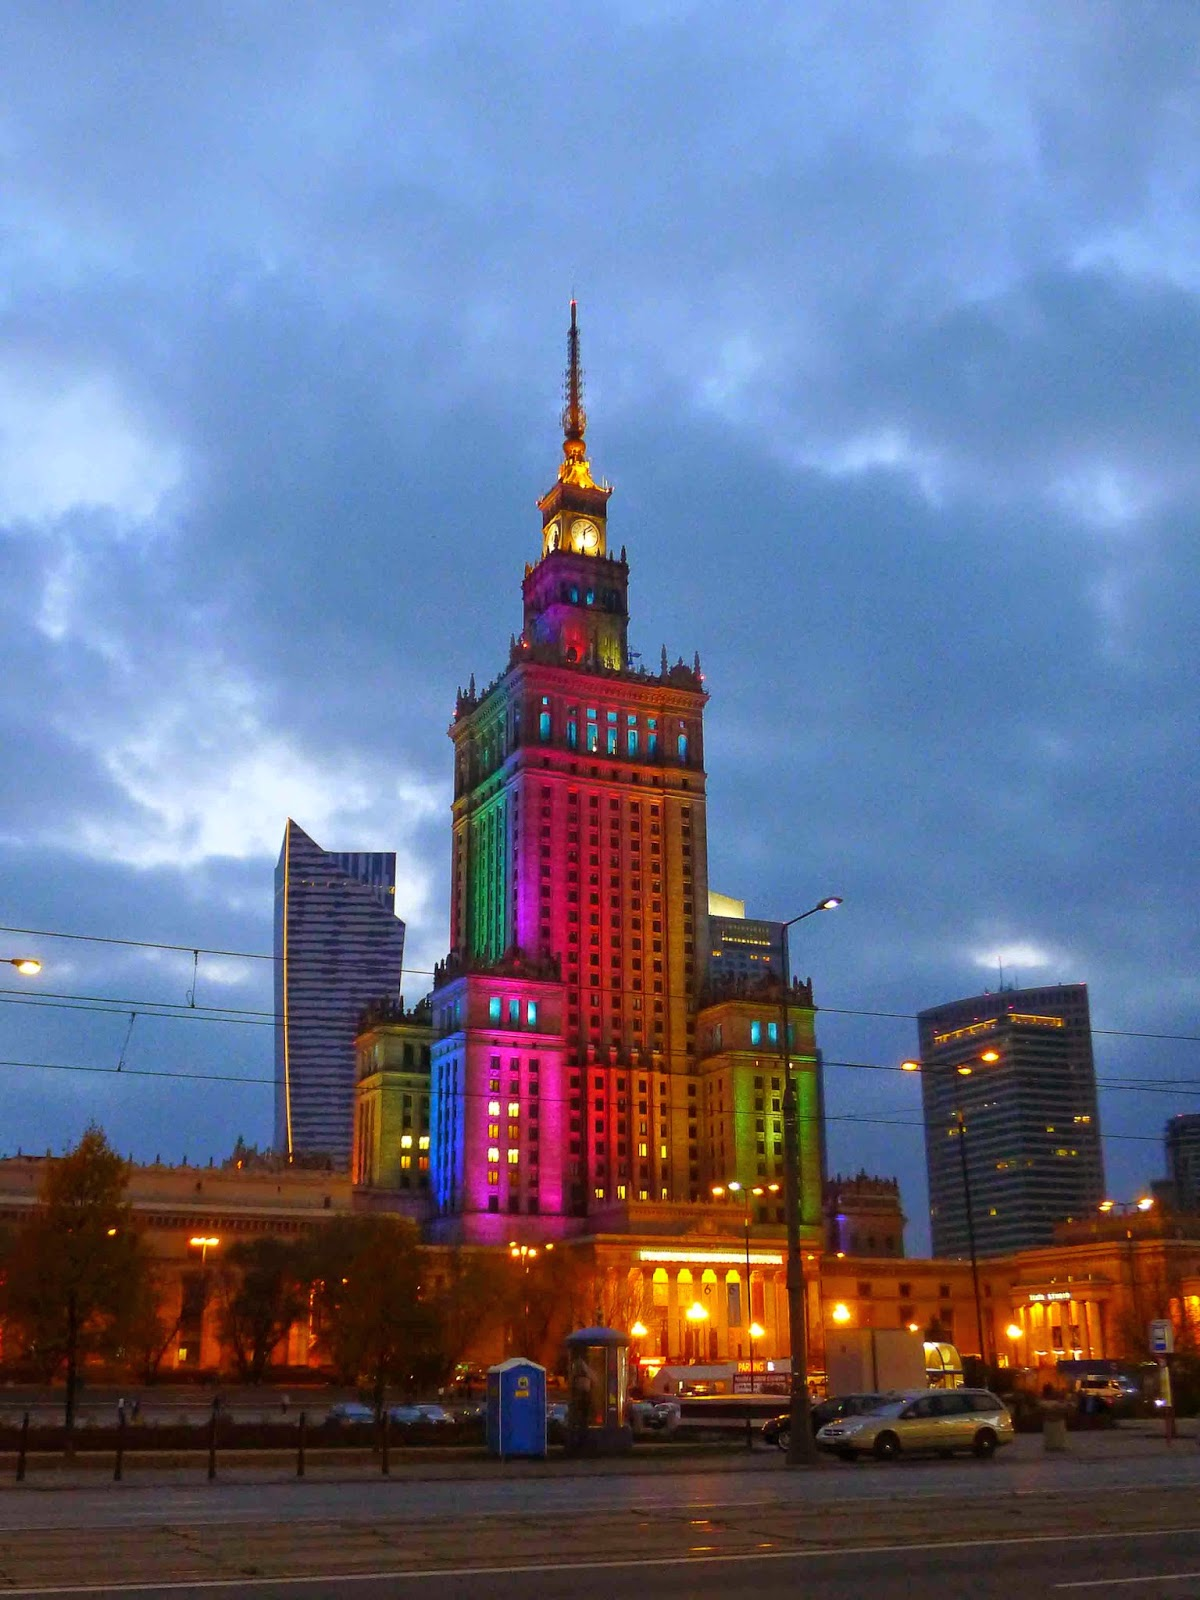 Illuminated Palace of Culture and Science